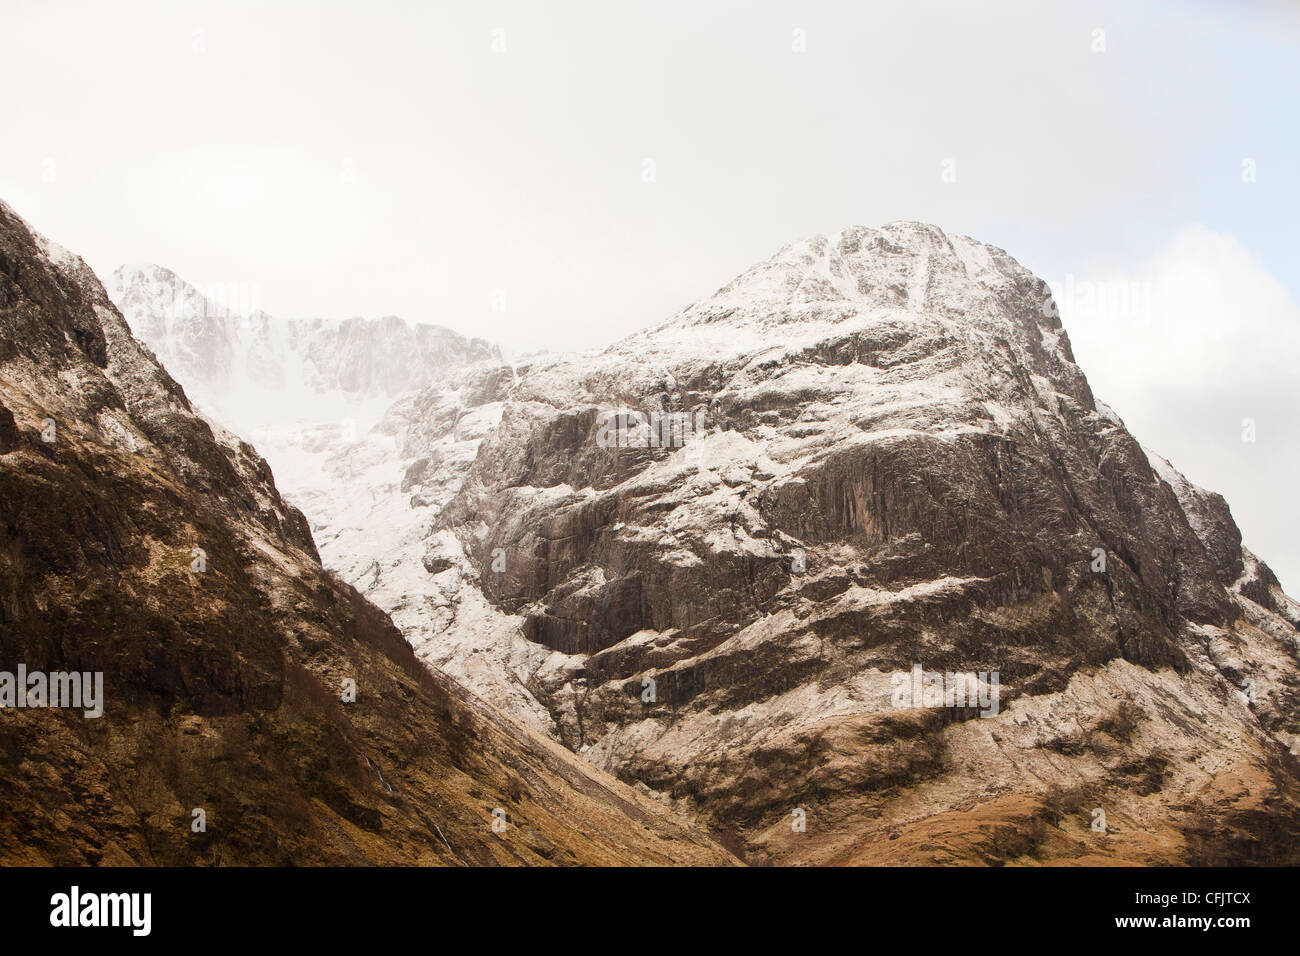 Fresh snow on Bidean nam Bian, the highest peak in Argyl, Glen Coe, Scotland, UK. - Stock Image